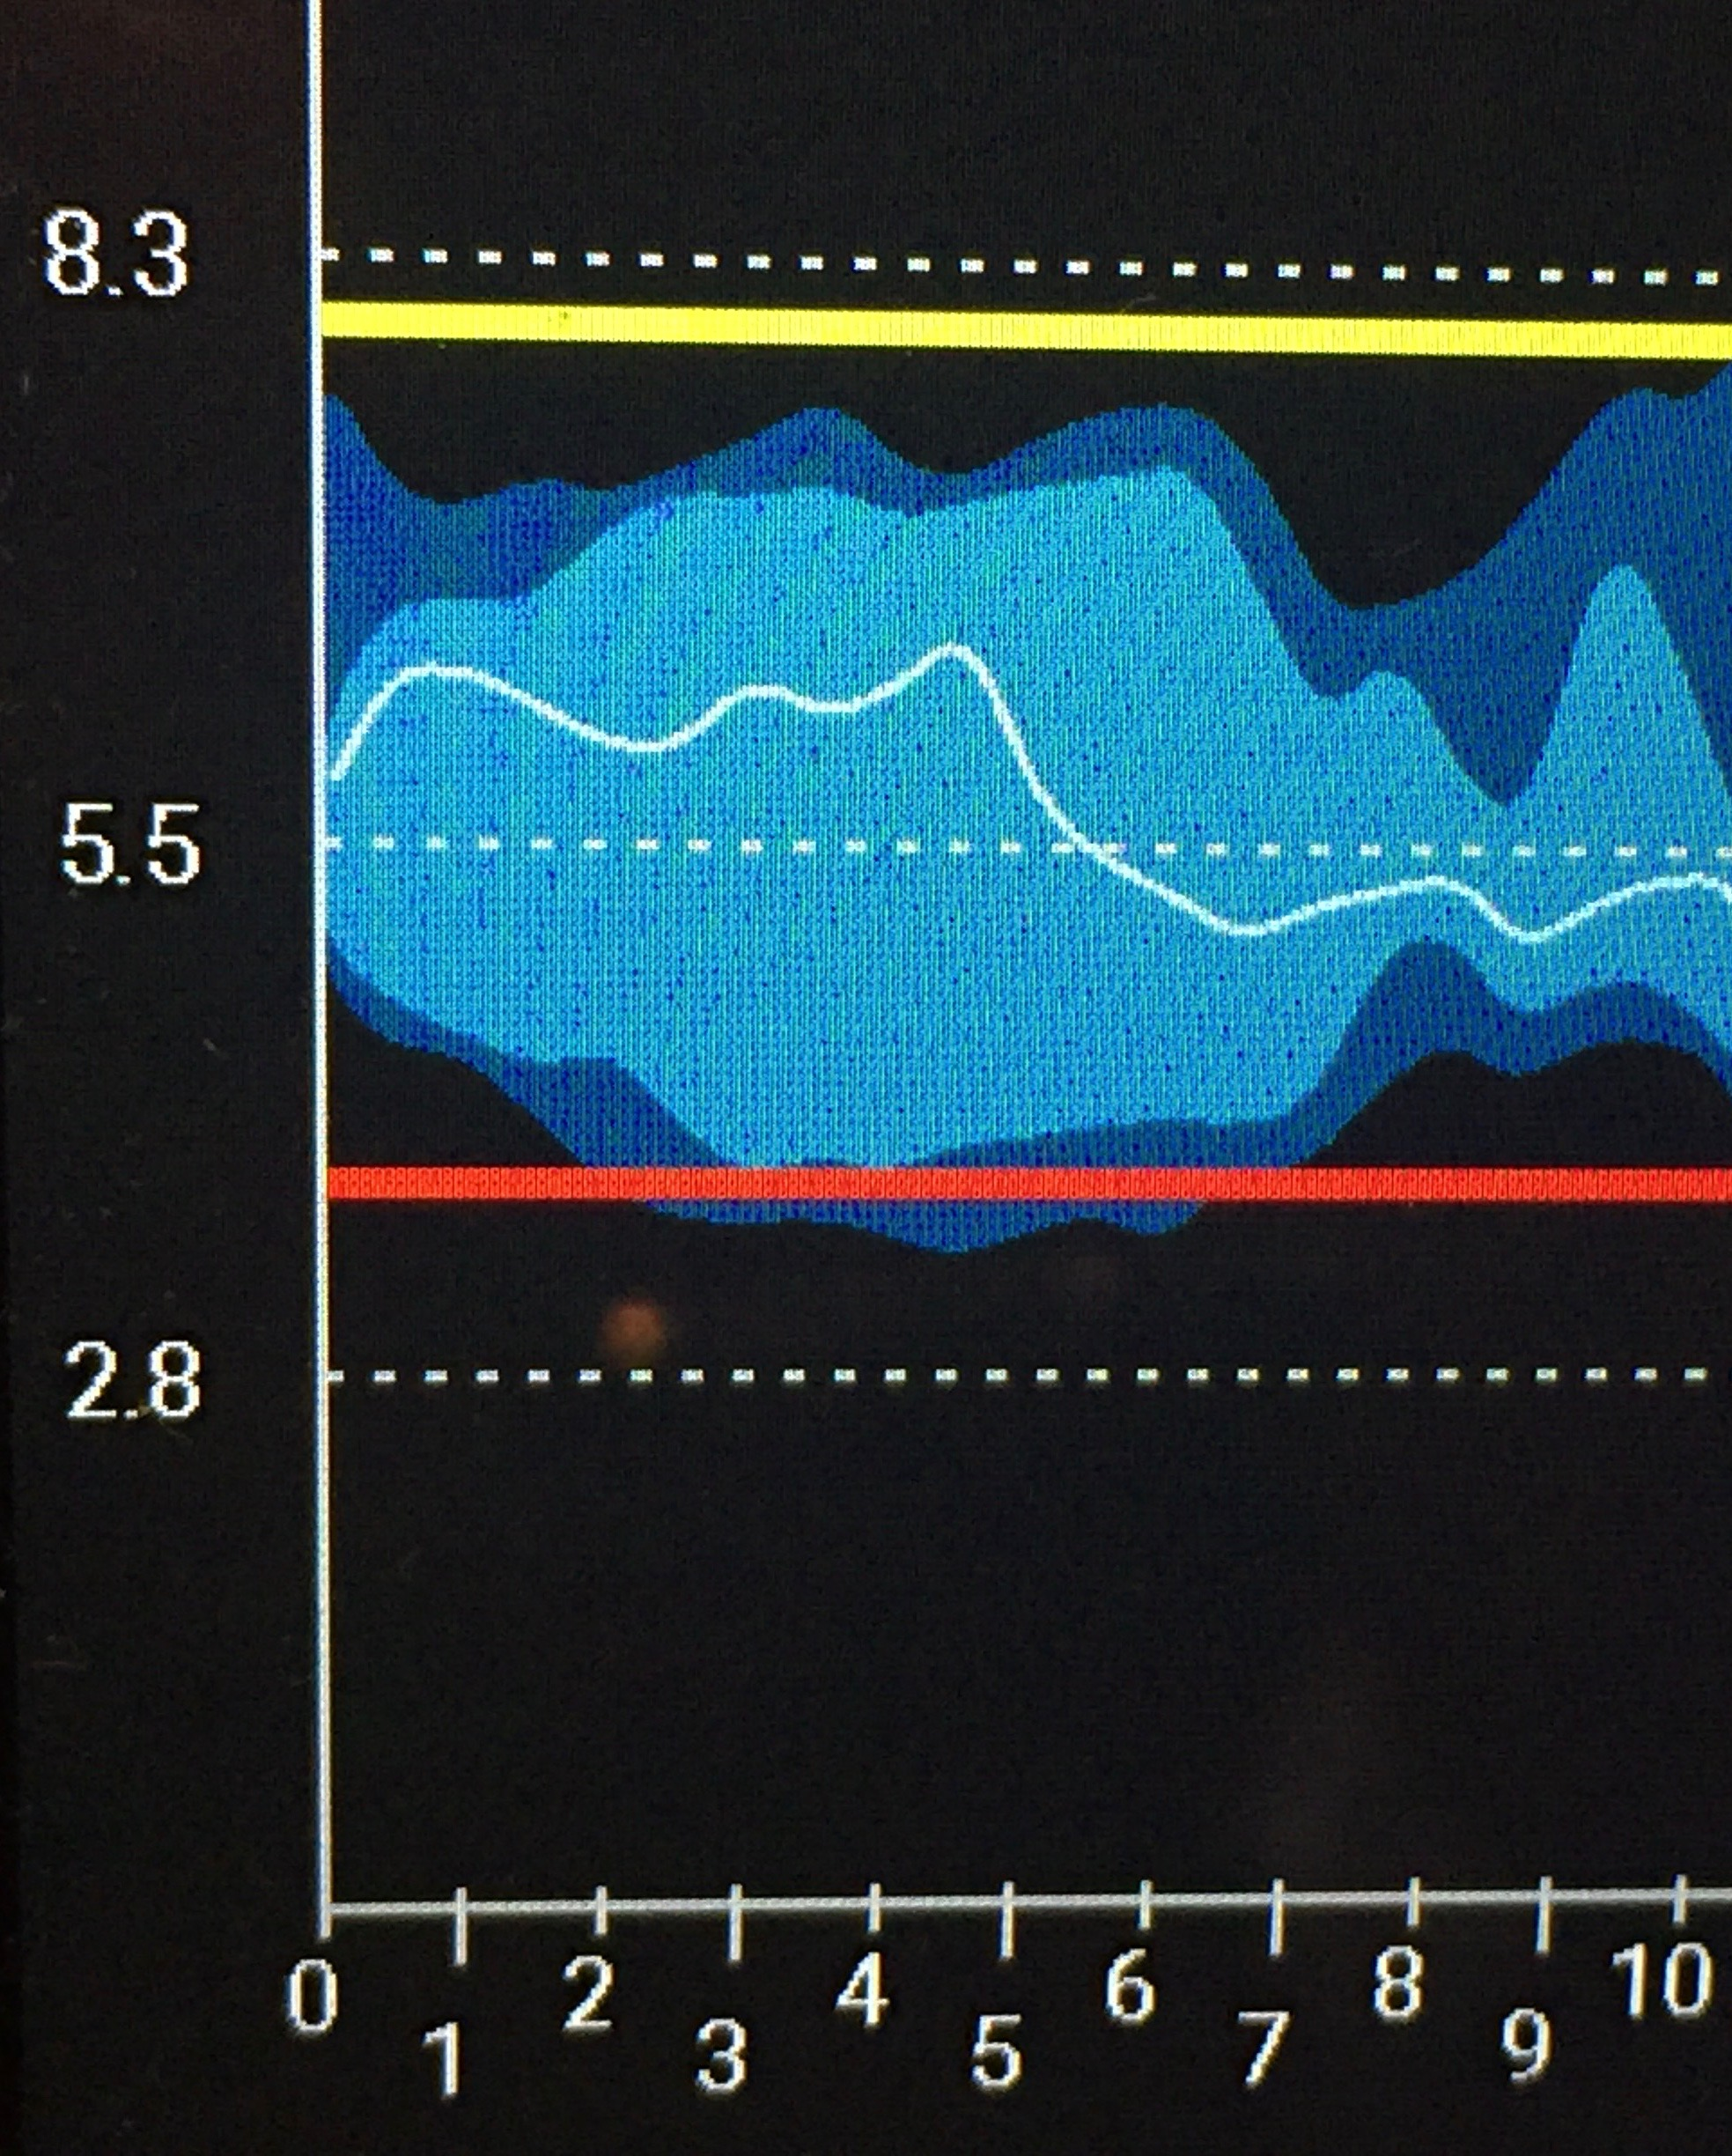 - The graph shows a week of CGM results from overnight and into the morning, based on a basal rate of 11.15u over a 24hour period. The spread of readings shows that there is no obvious pattern to the dose required.